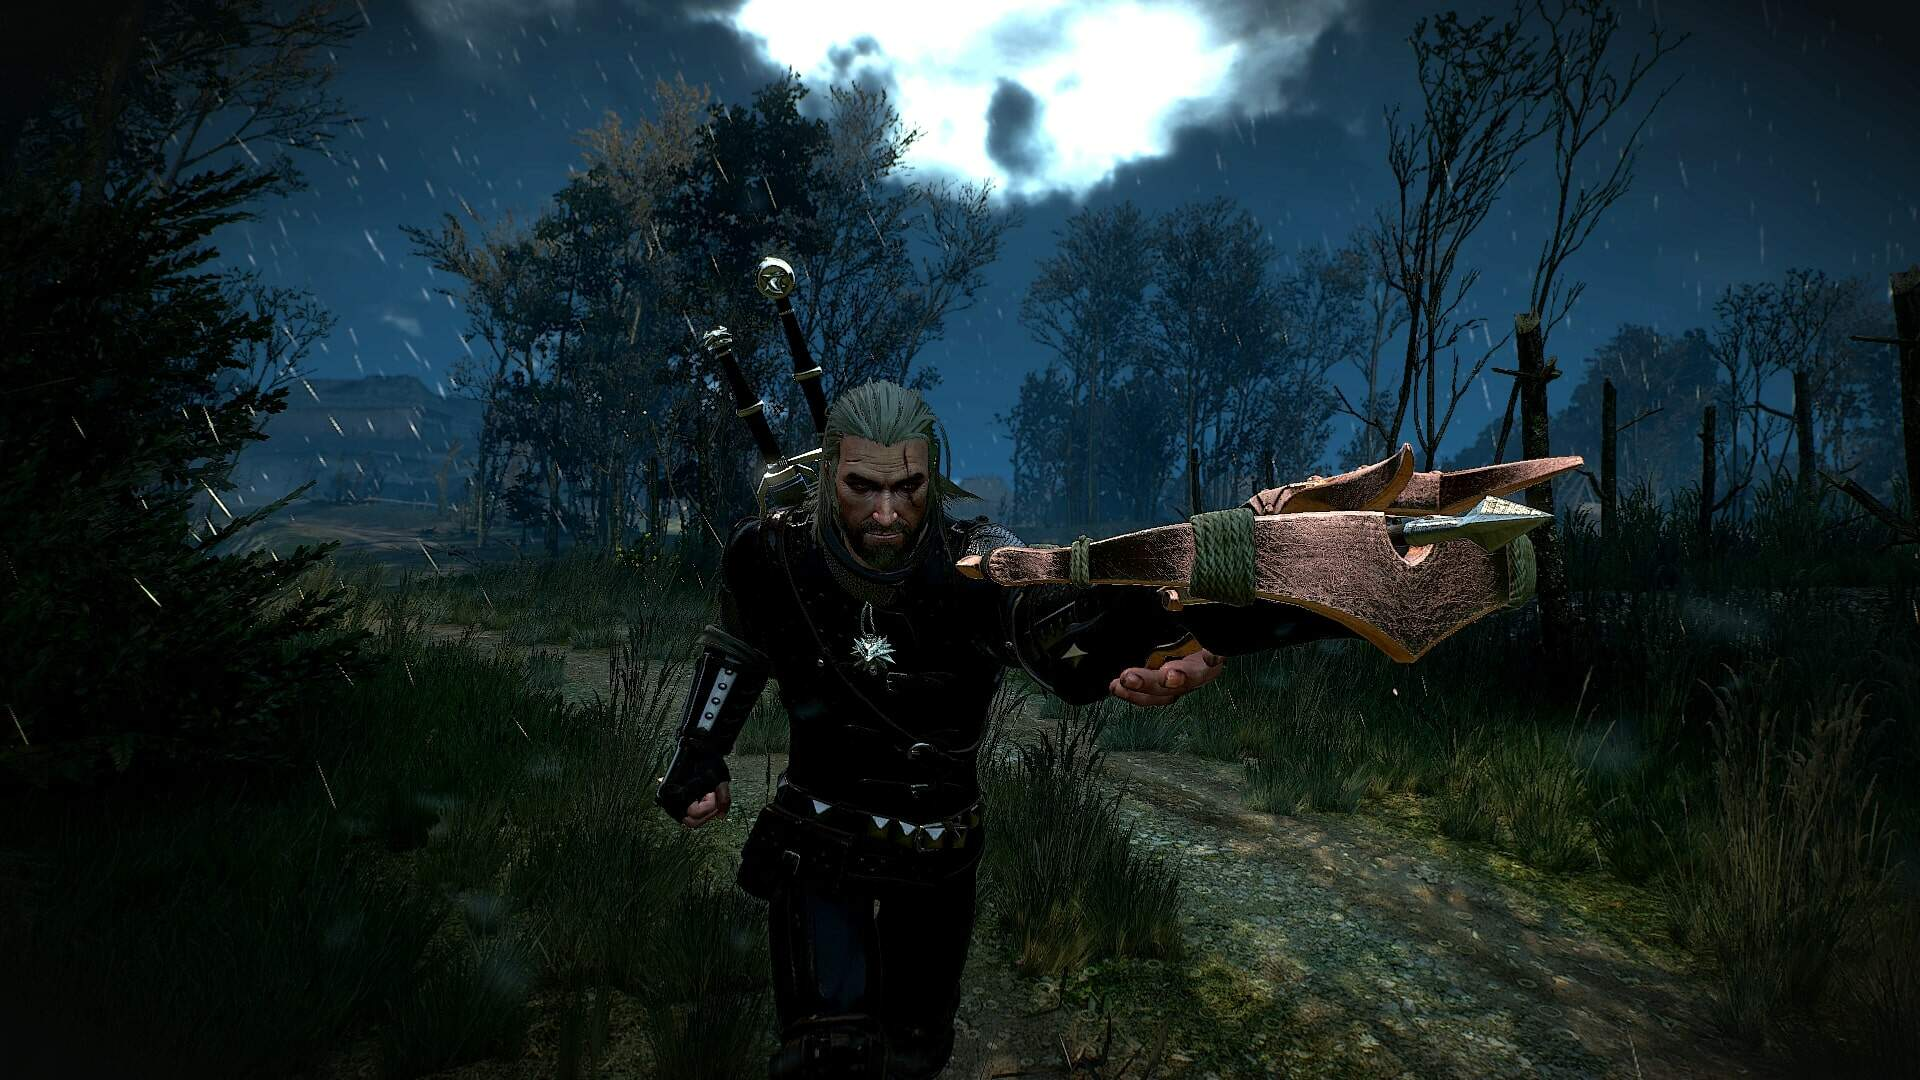 Witcher 3: How to Equip and Use the Crossbow